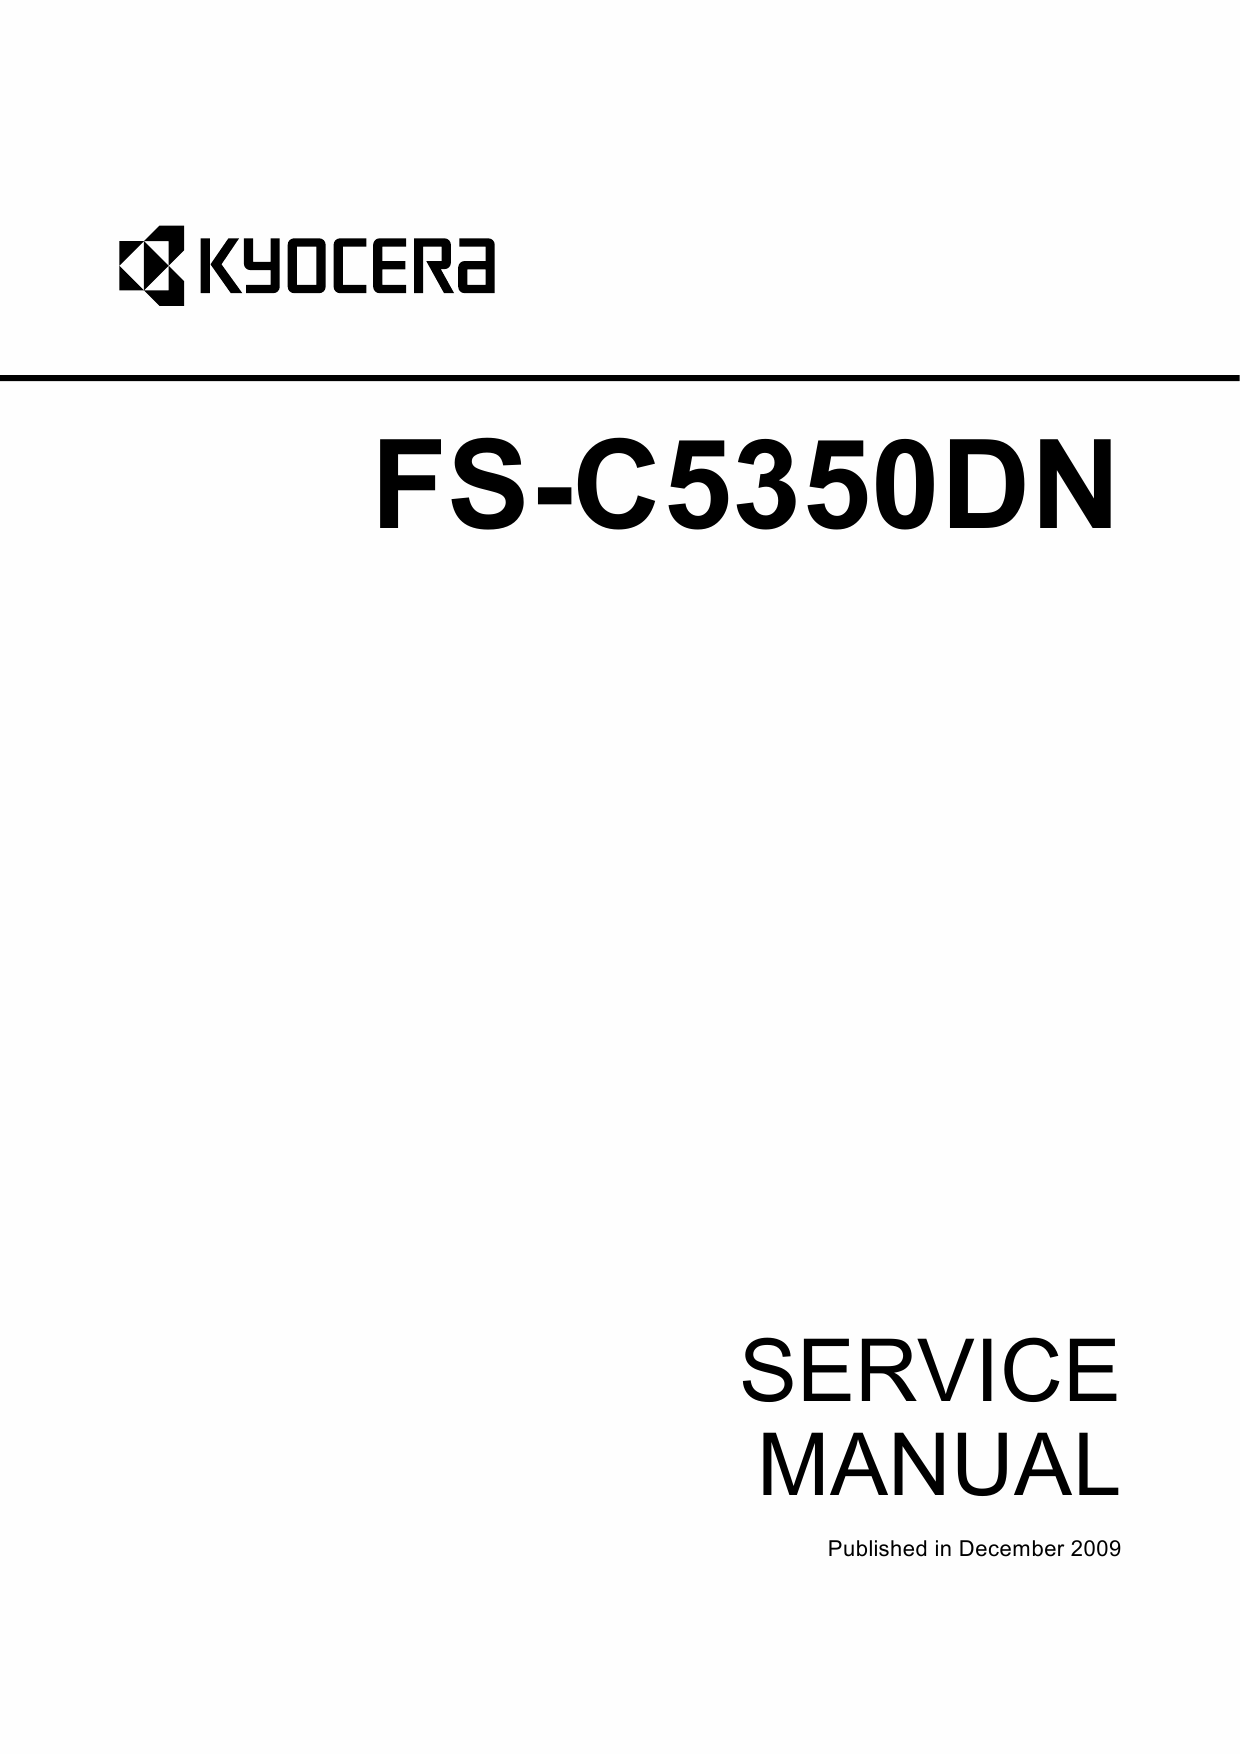 KYOCERA ColorLaserPrinter FS-C5350DN Parts and Service Manual